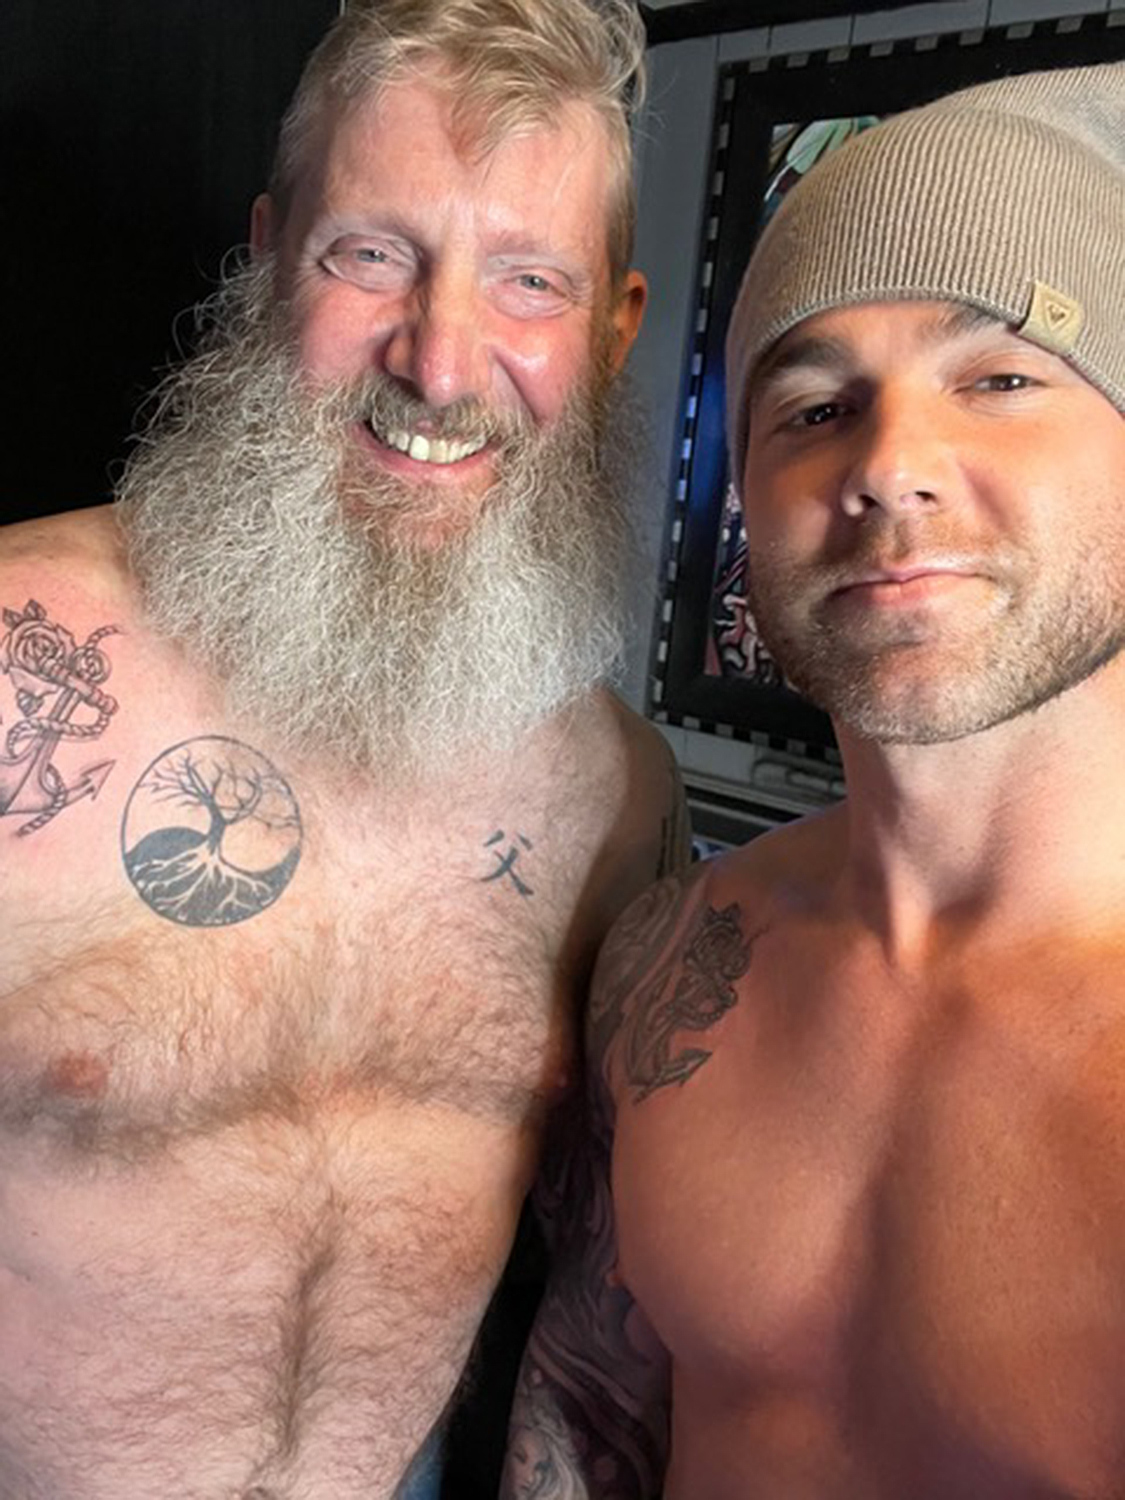 Jay Allen's Song 'Tattoos to Heaven' Goes Viral Thanks to the Story of a Terminally Ill Toledo Man